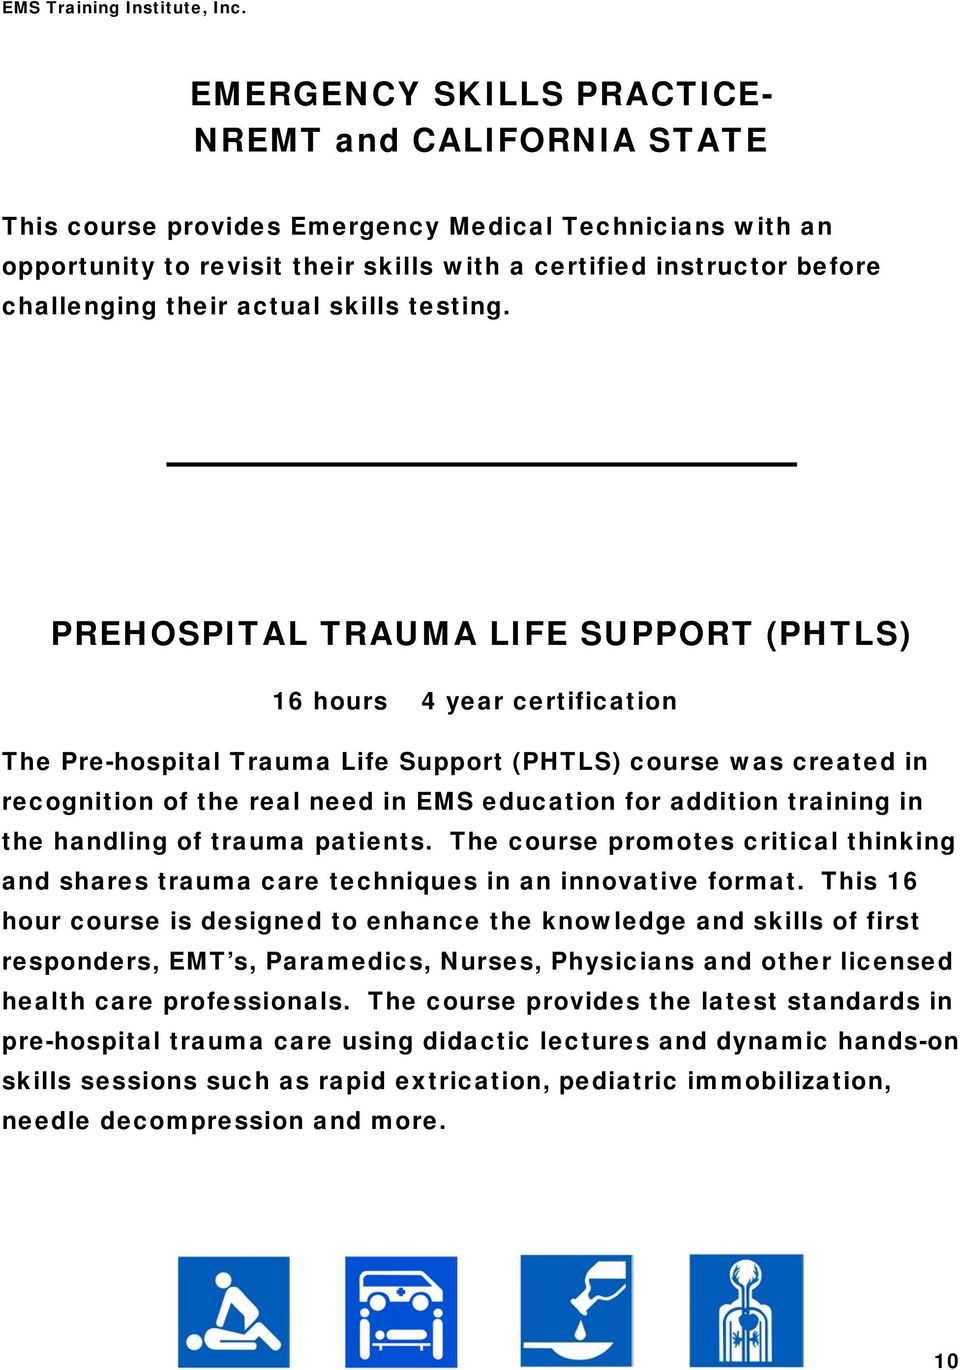 Ems Training Institute Inc Pdf